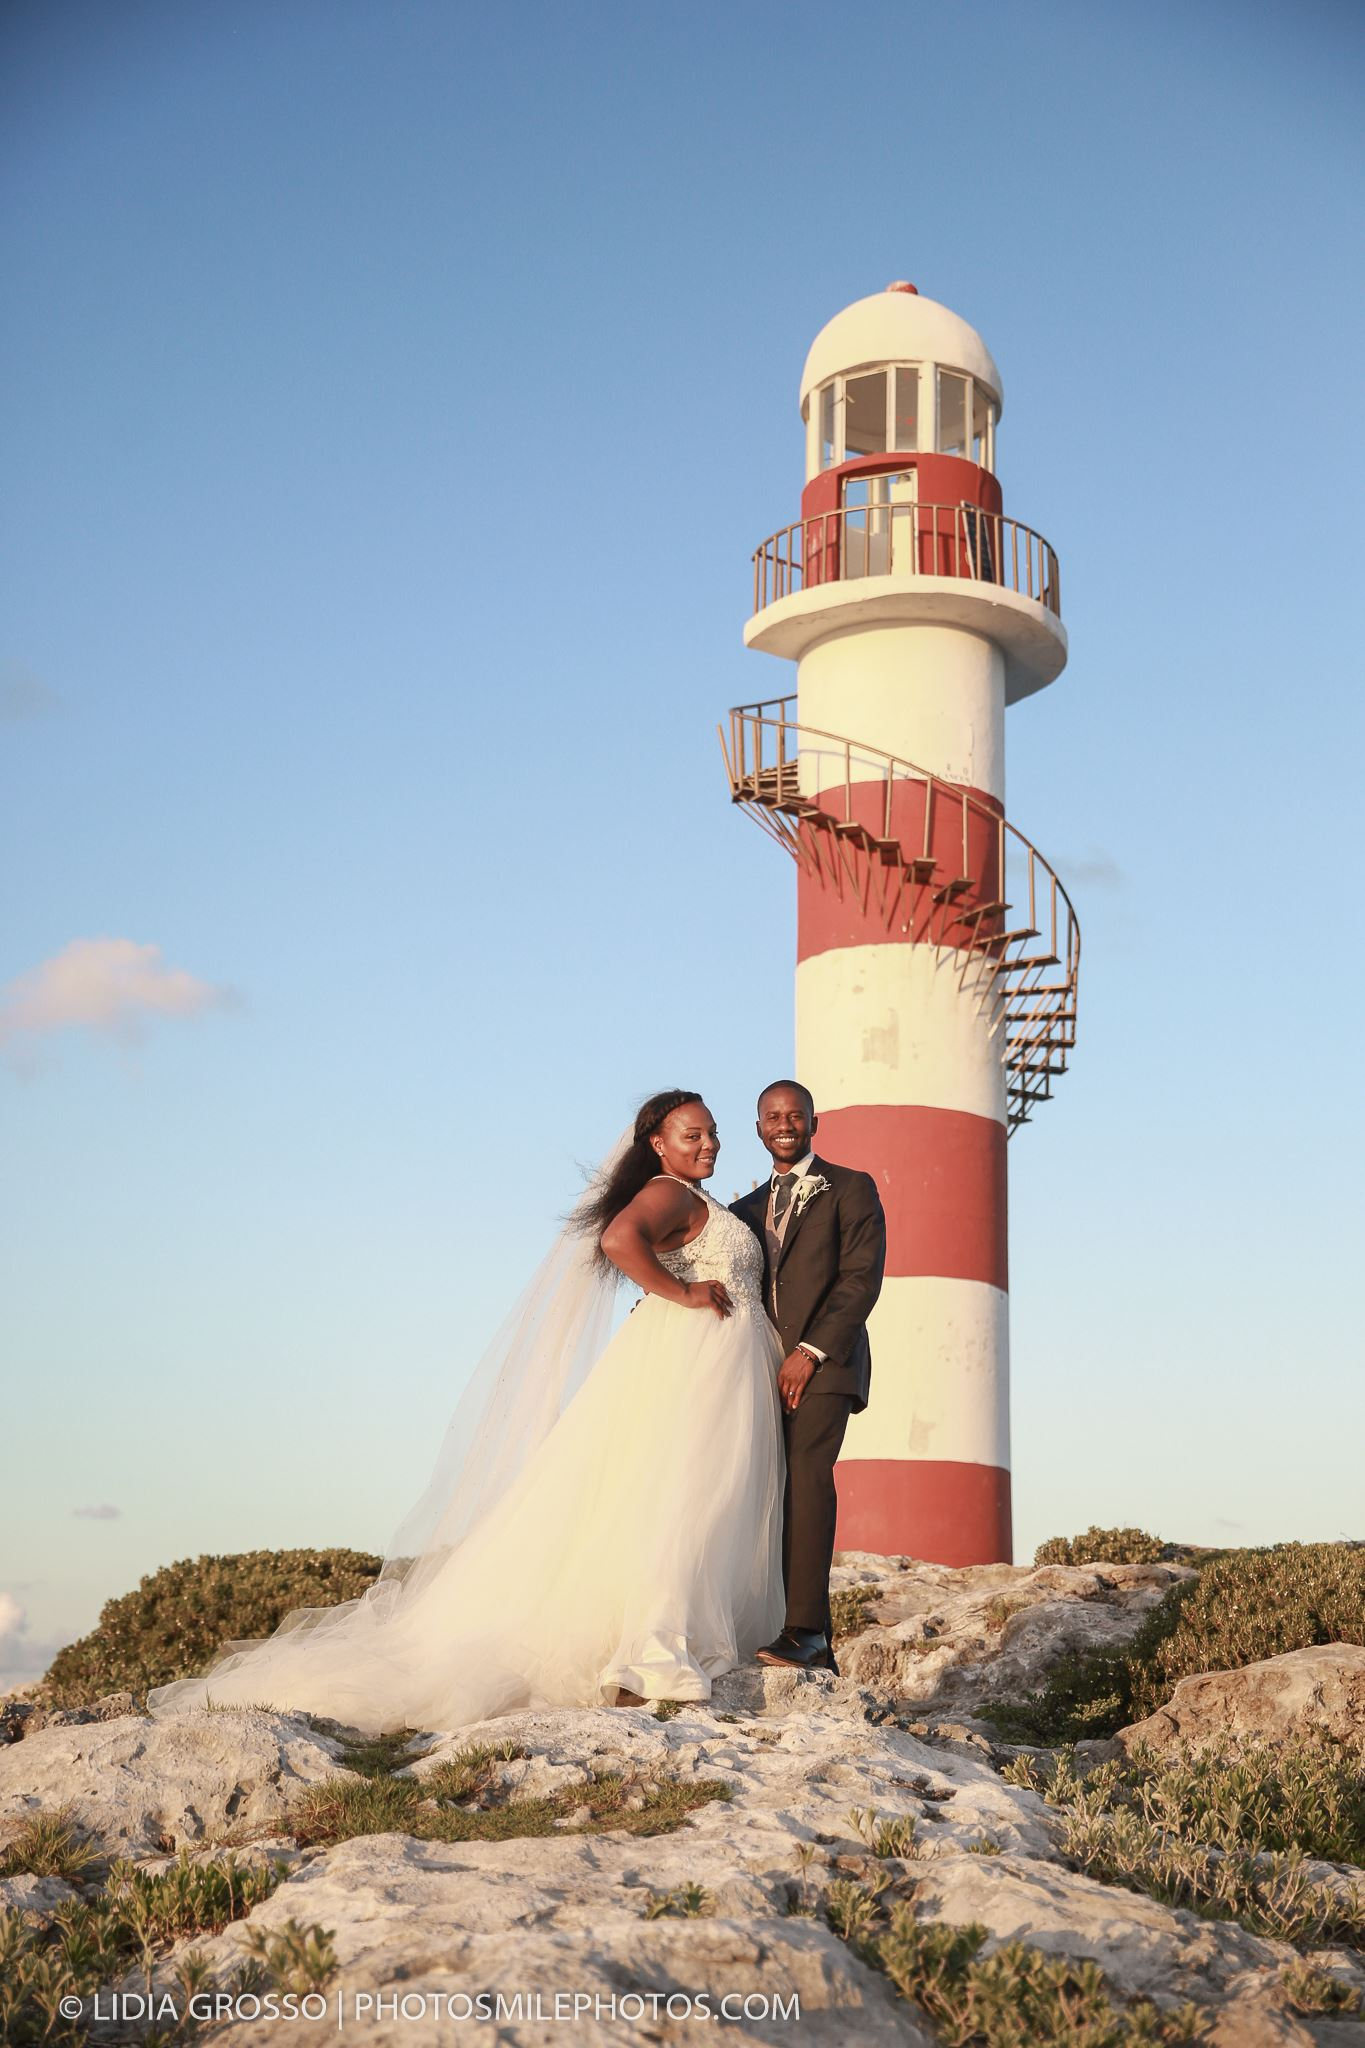 cancun wedding photos, a day after session photos, Hyatt Ziva Cancun wedding photographer, best beach wedding photos, lidia grosso photography, hyatt ziva lighthouse